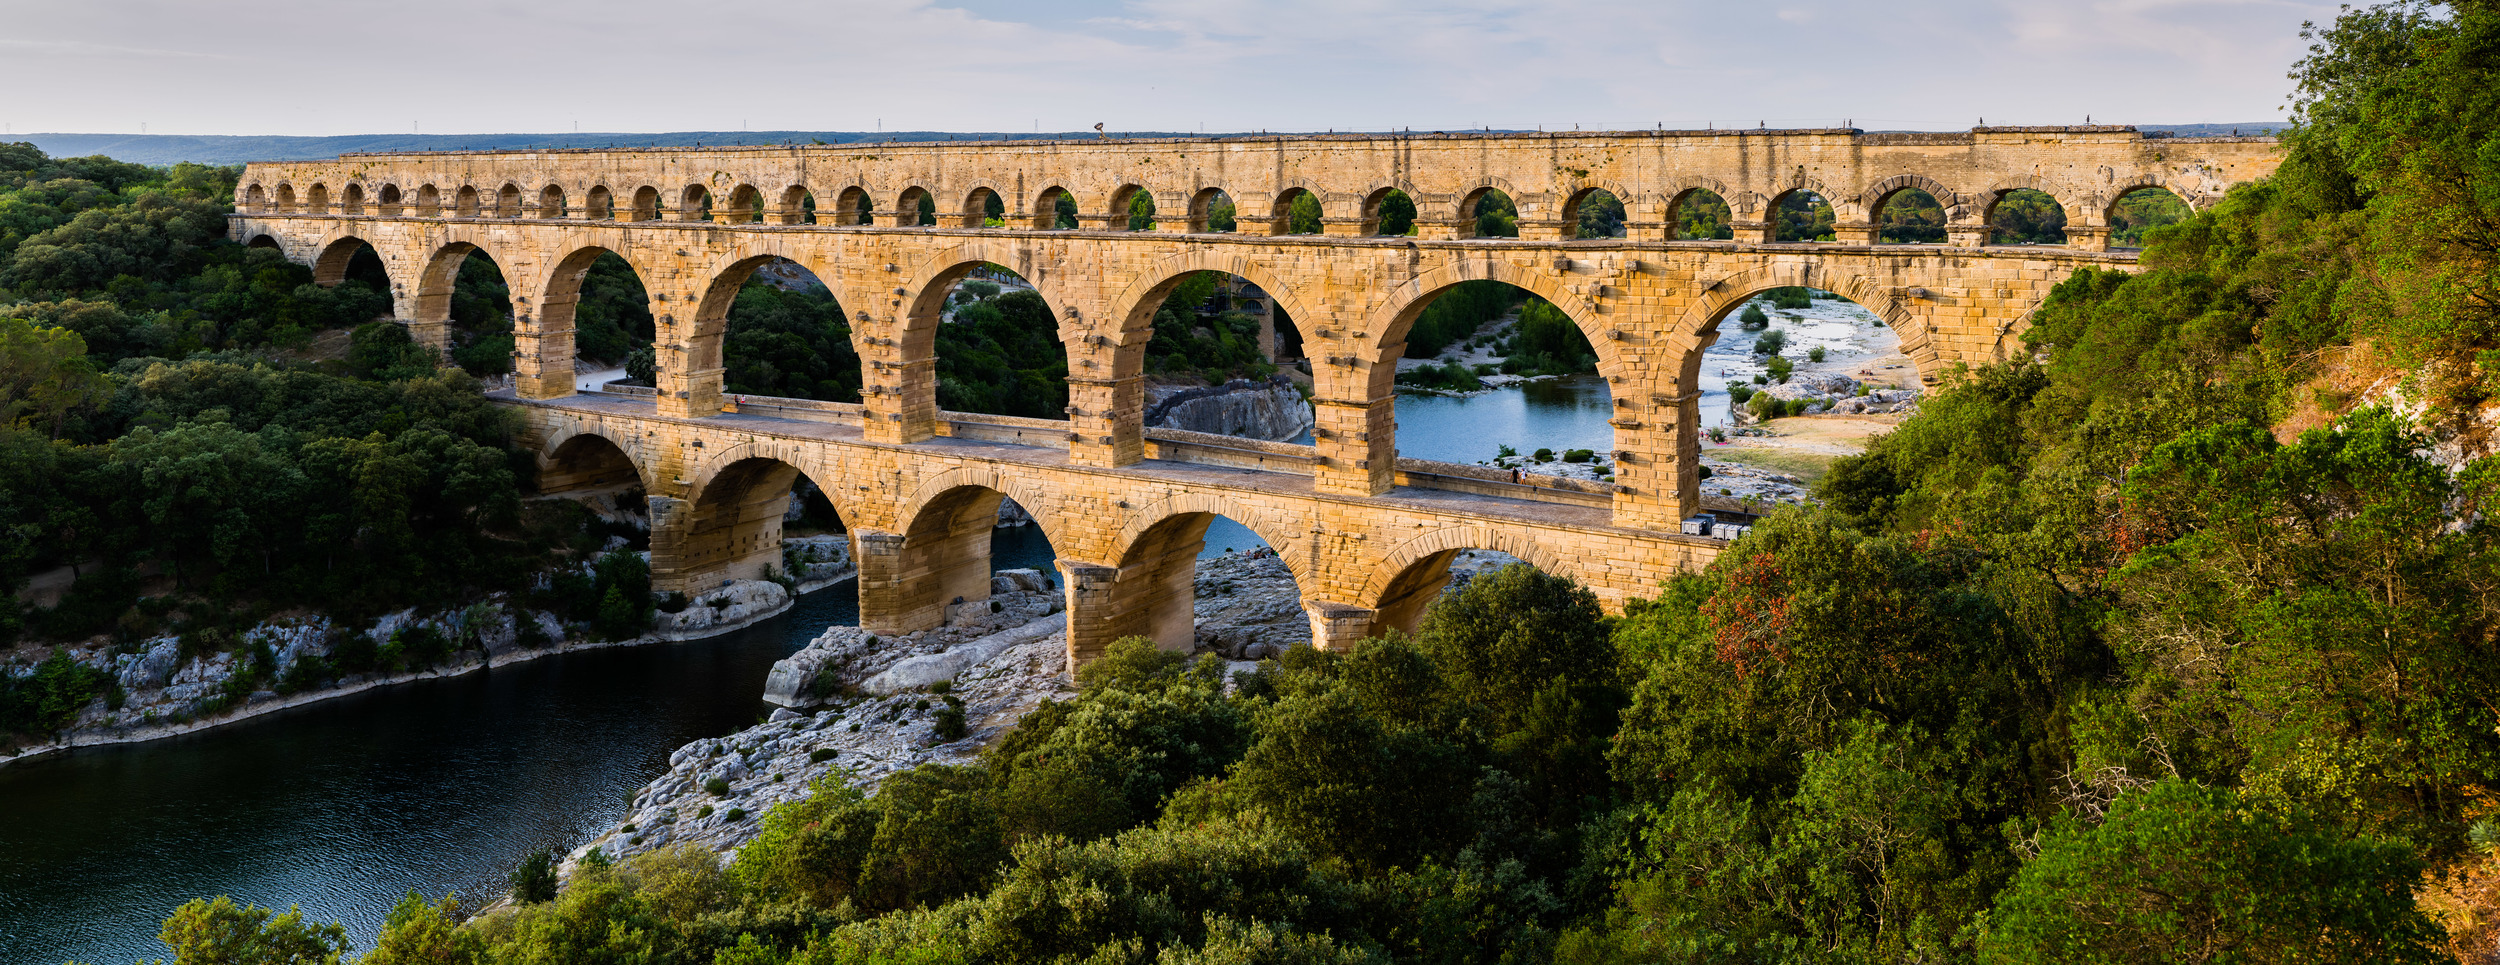 """Pont du Gard BLS"" by Benh LIEU SONG - Own work. Licensed under CC BY-SA 3.0 via Wikimedia Commons"